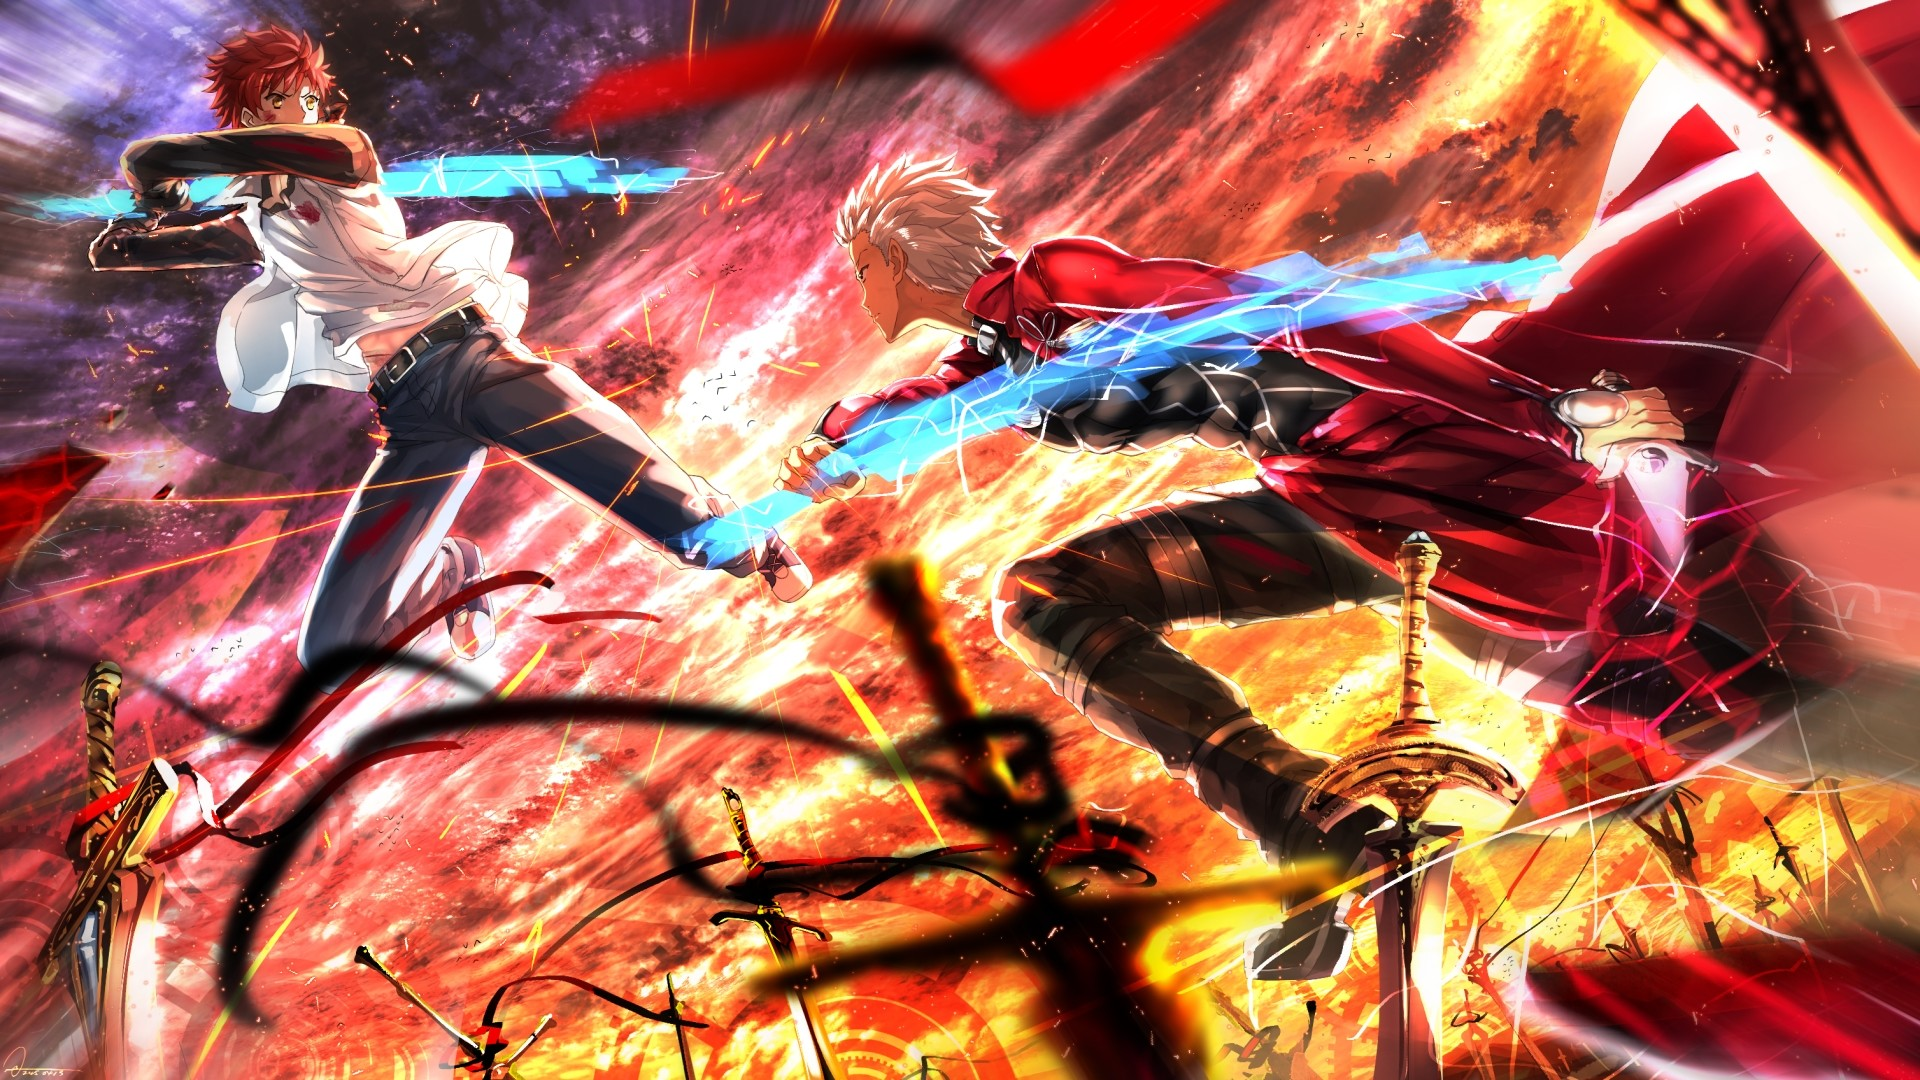 1920x1080 Fate/stay night: Unlimited Blade Works Wallpapers